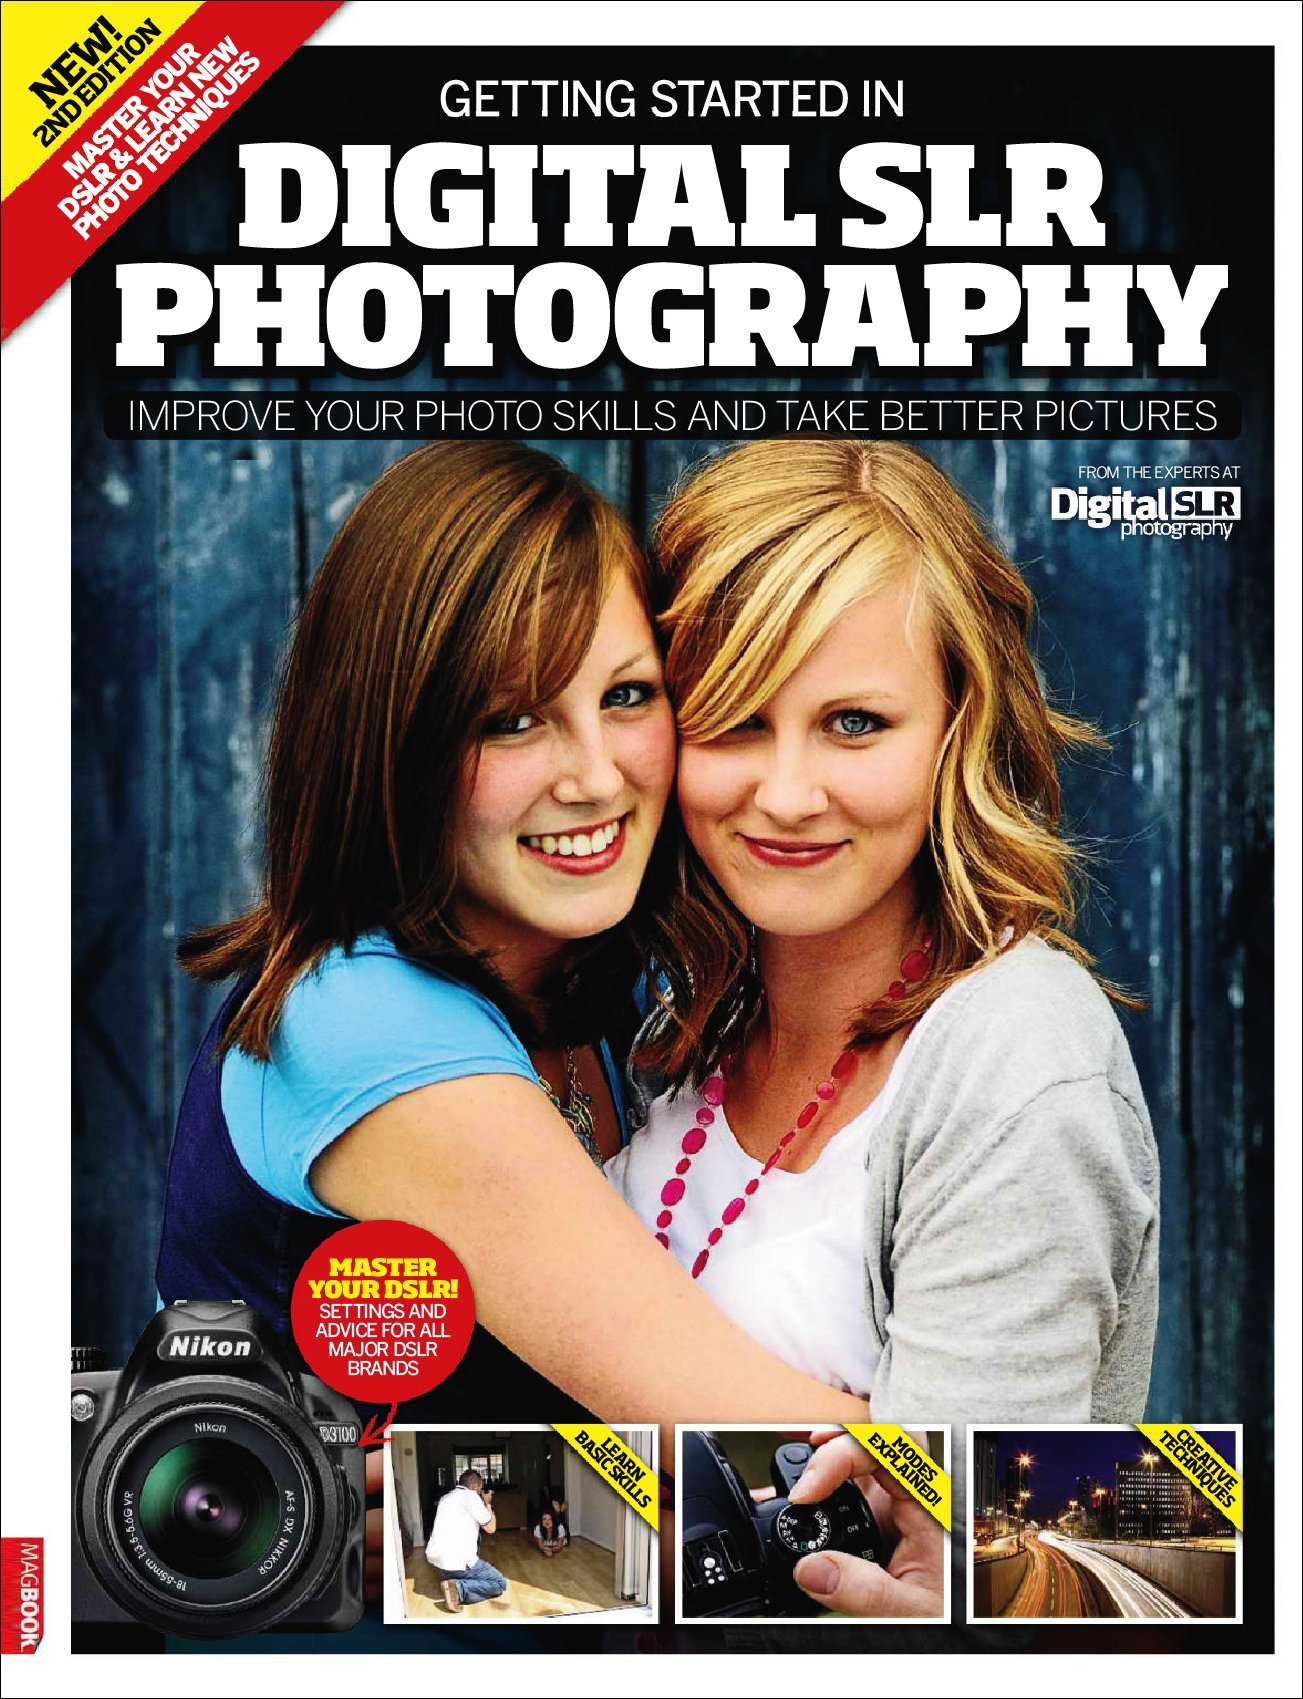 Getting Started in Digital SLR Photography 2nd ed Digital